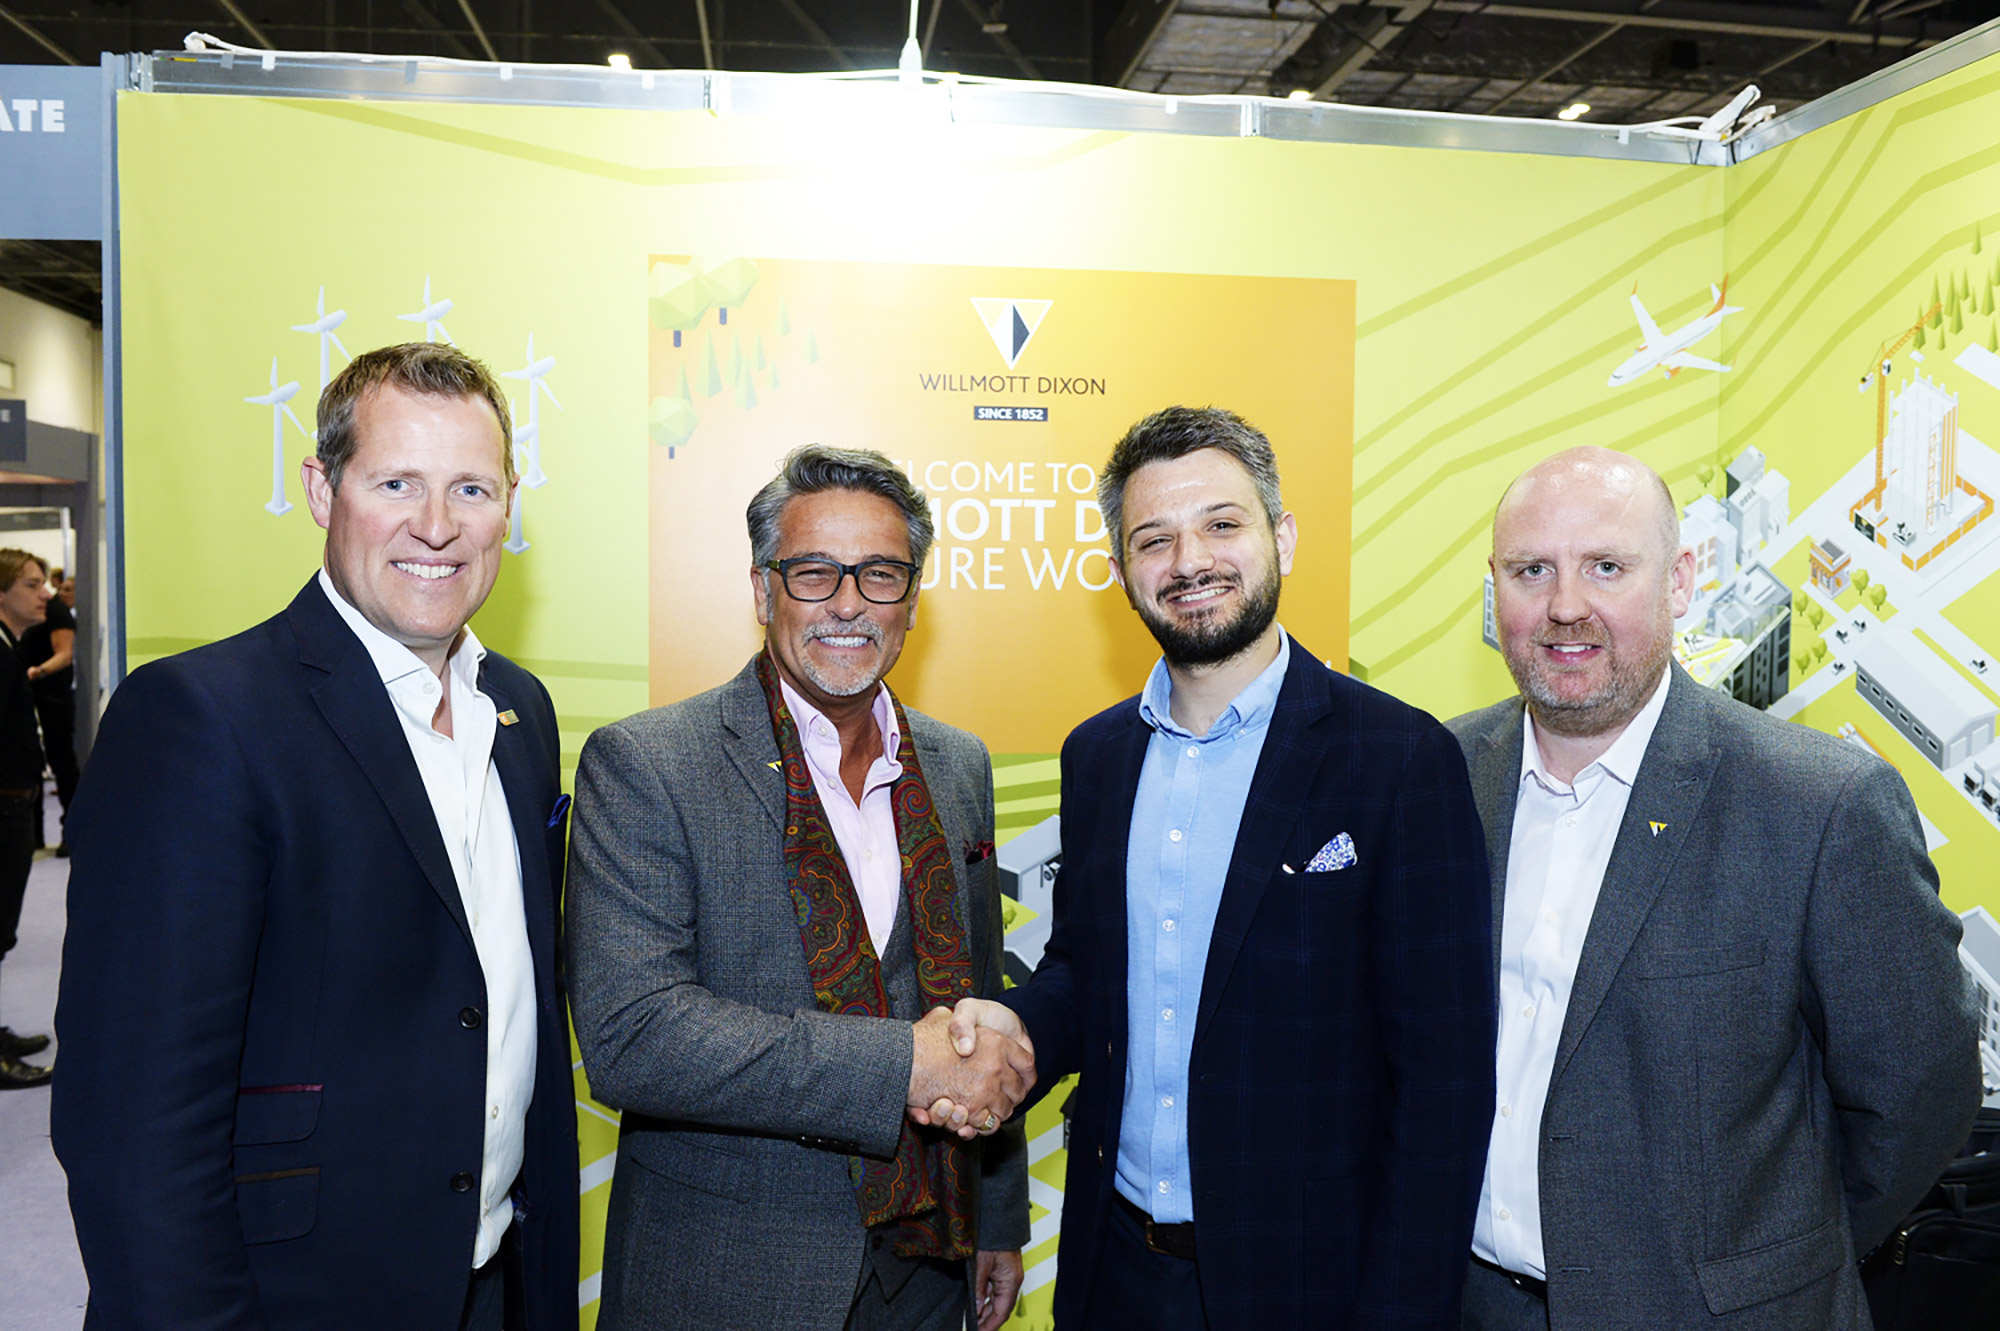 Willmott Dixon named headline sponsor for Active Uprising after signing three-year partnership with ukactive